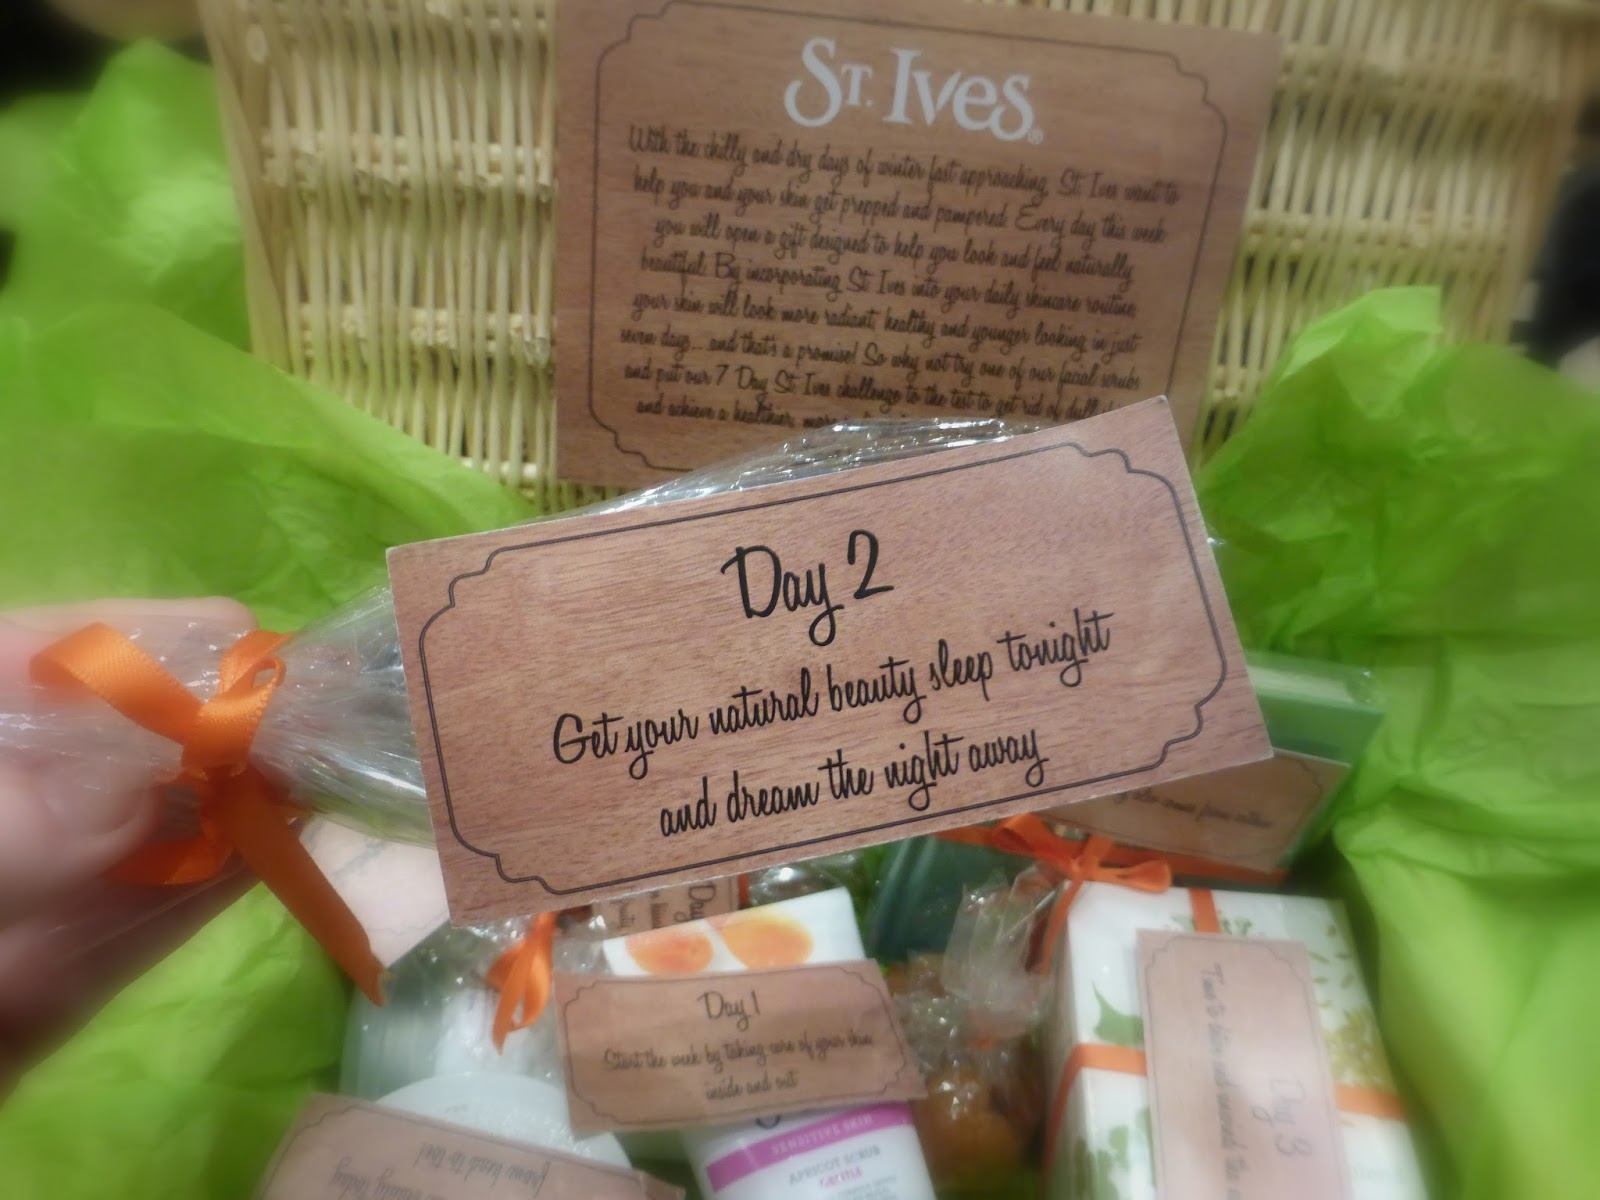 St Ives 7 Days to Beautiful Skin Challenge